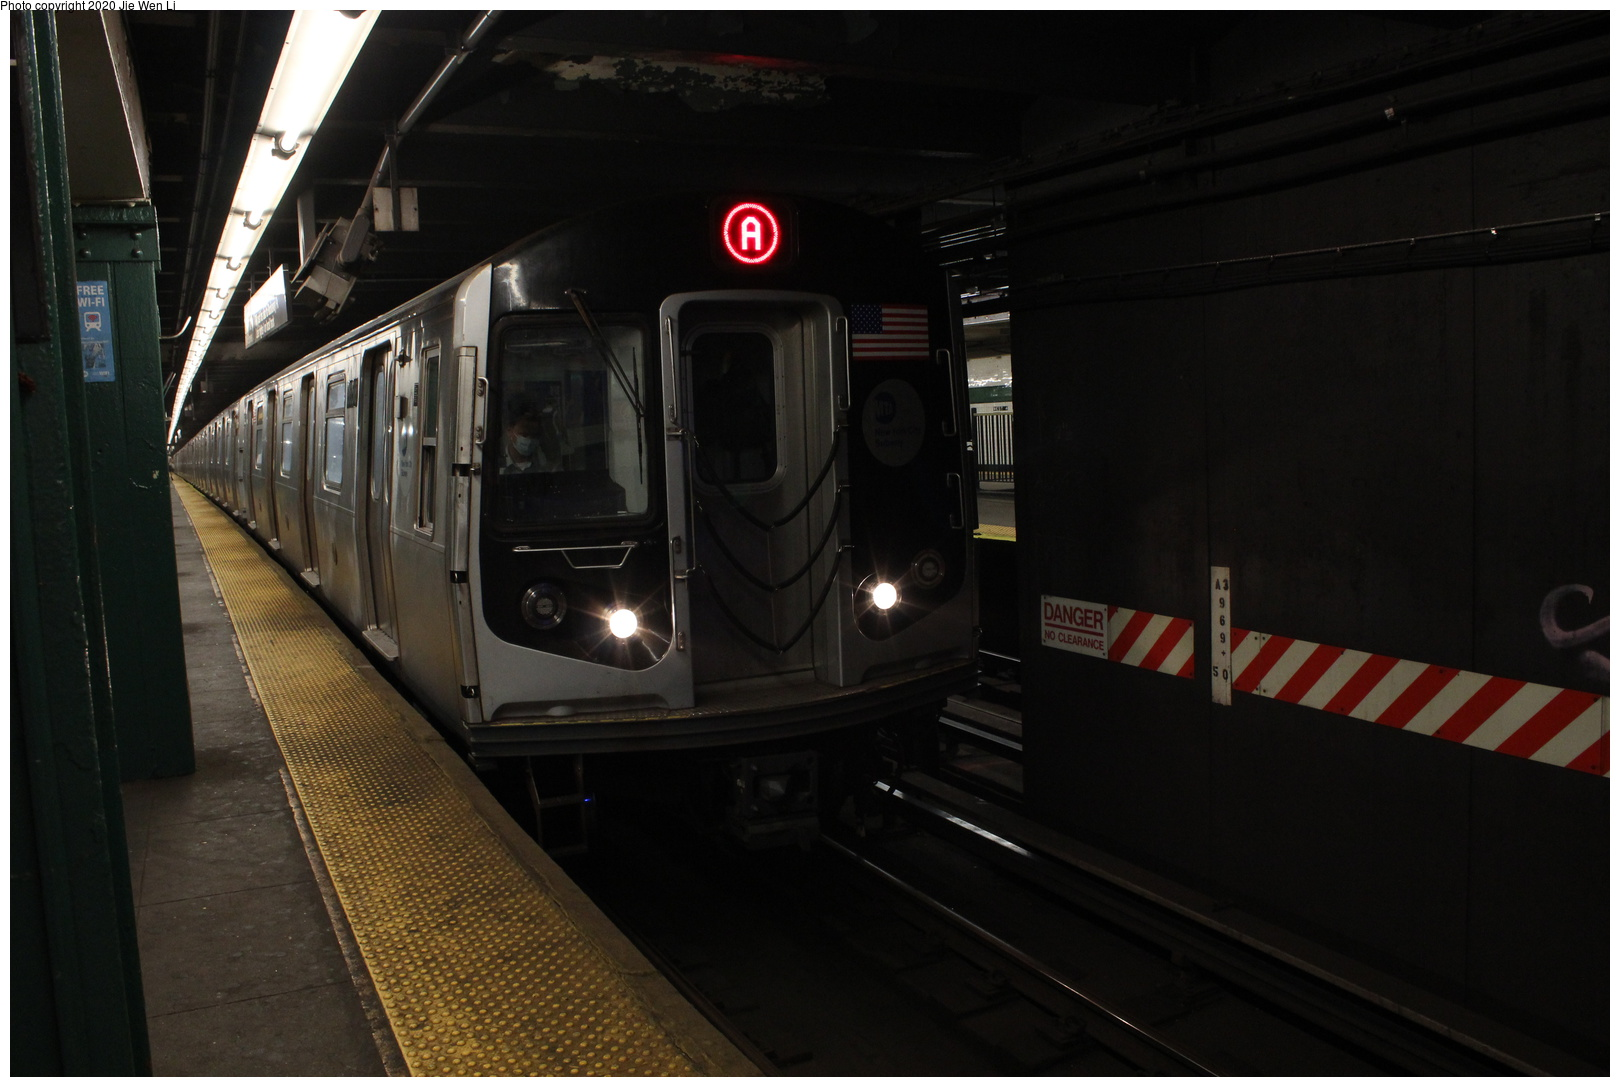 (245k, 1044x684)<br><b>Country:</b> United States<br><b>City:</b> New York<br><b>System:</b> New York City Transit<br><b>Line:</b> IRT Flushing Line<br><b>Location:</b> Willets Point/Mets (fmr. Shea Stadium) <br><b>Route:</b> 7 Special<br><b>Car:</b> R-29 (St. Louis, 1962)  <br><b>Photo by:</b> Joel Shanus<br><b>Date:</b> 1964<br><b>Viewed (this week/total):</b> 4 / 2119